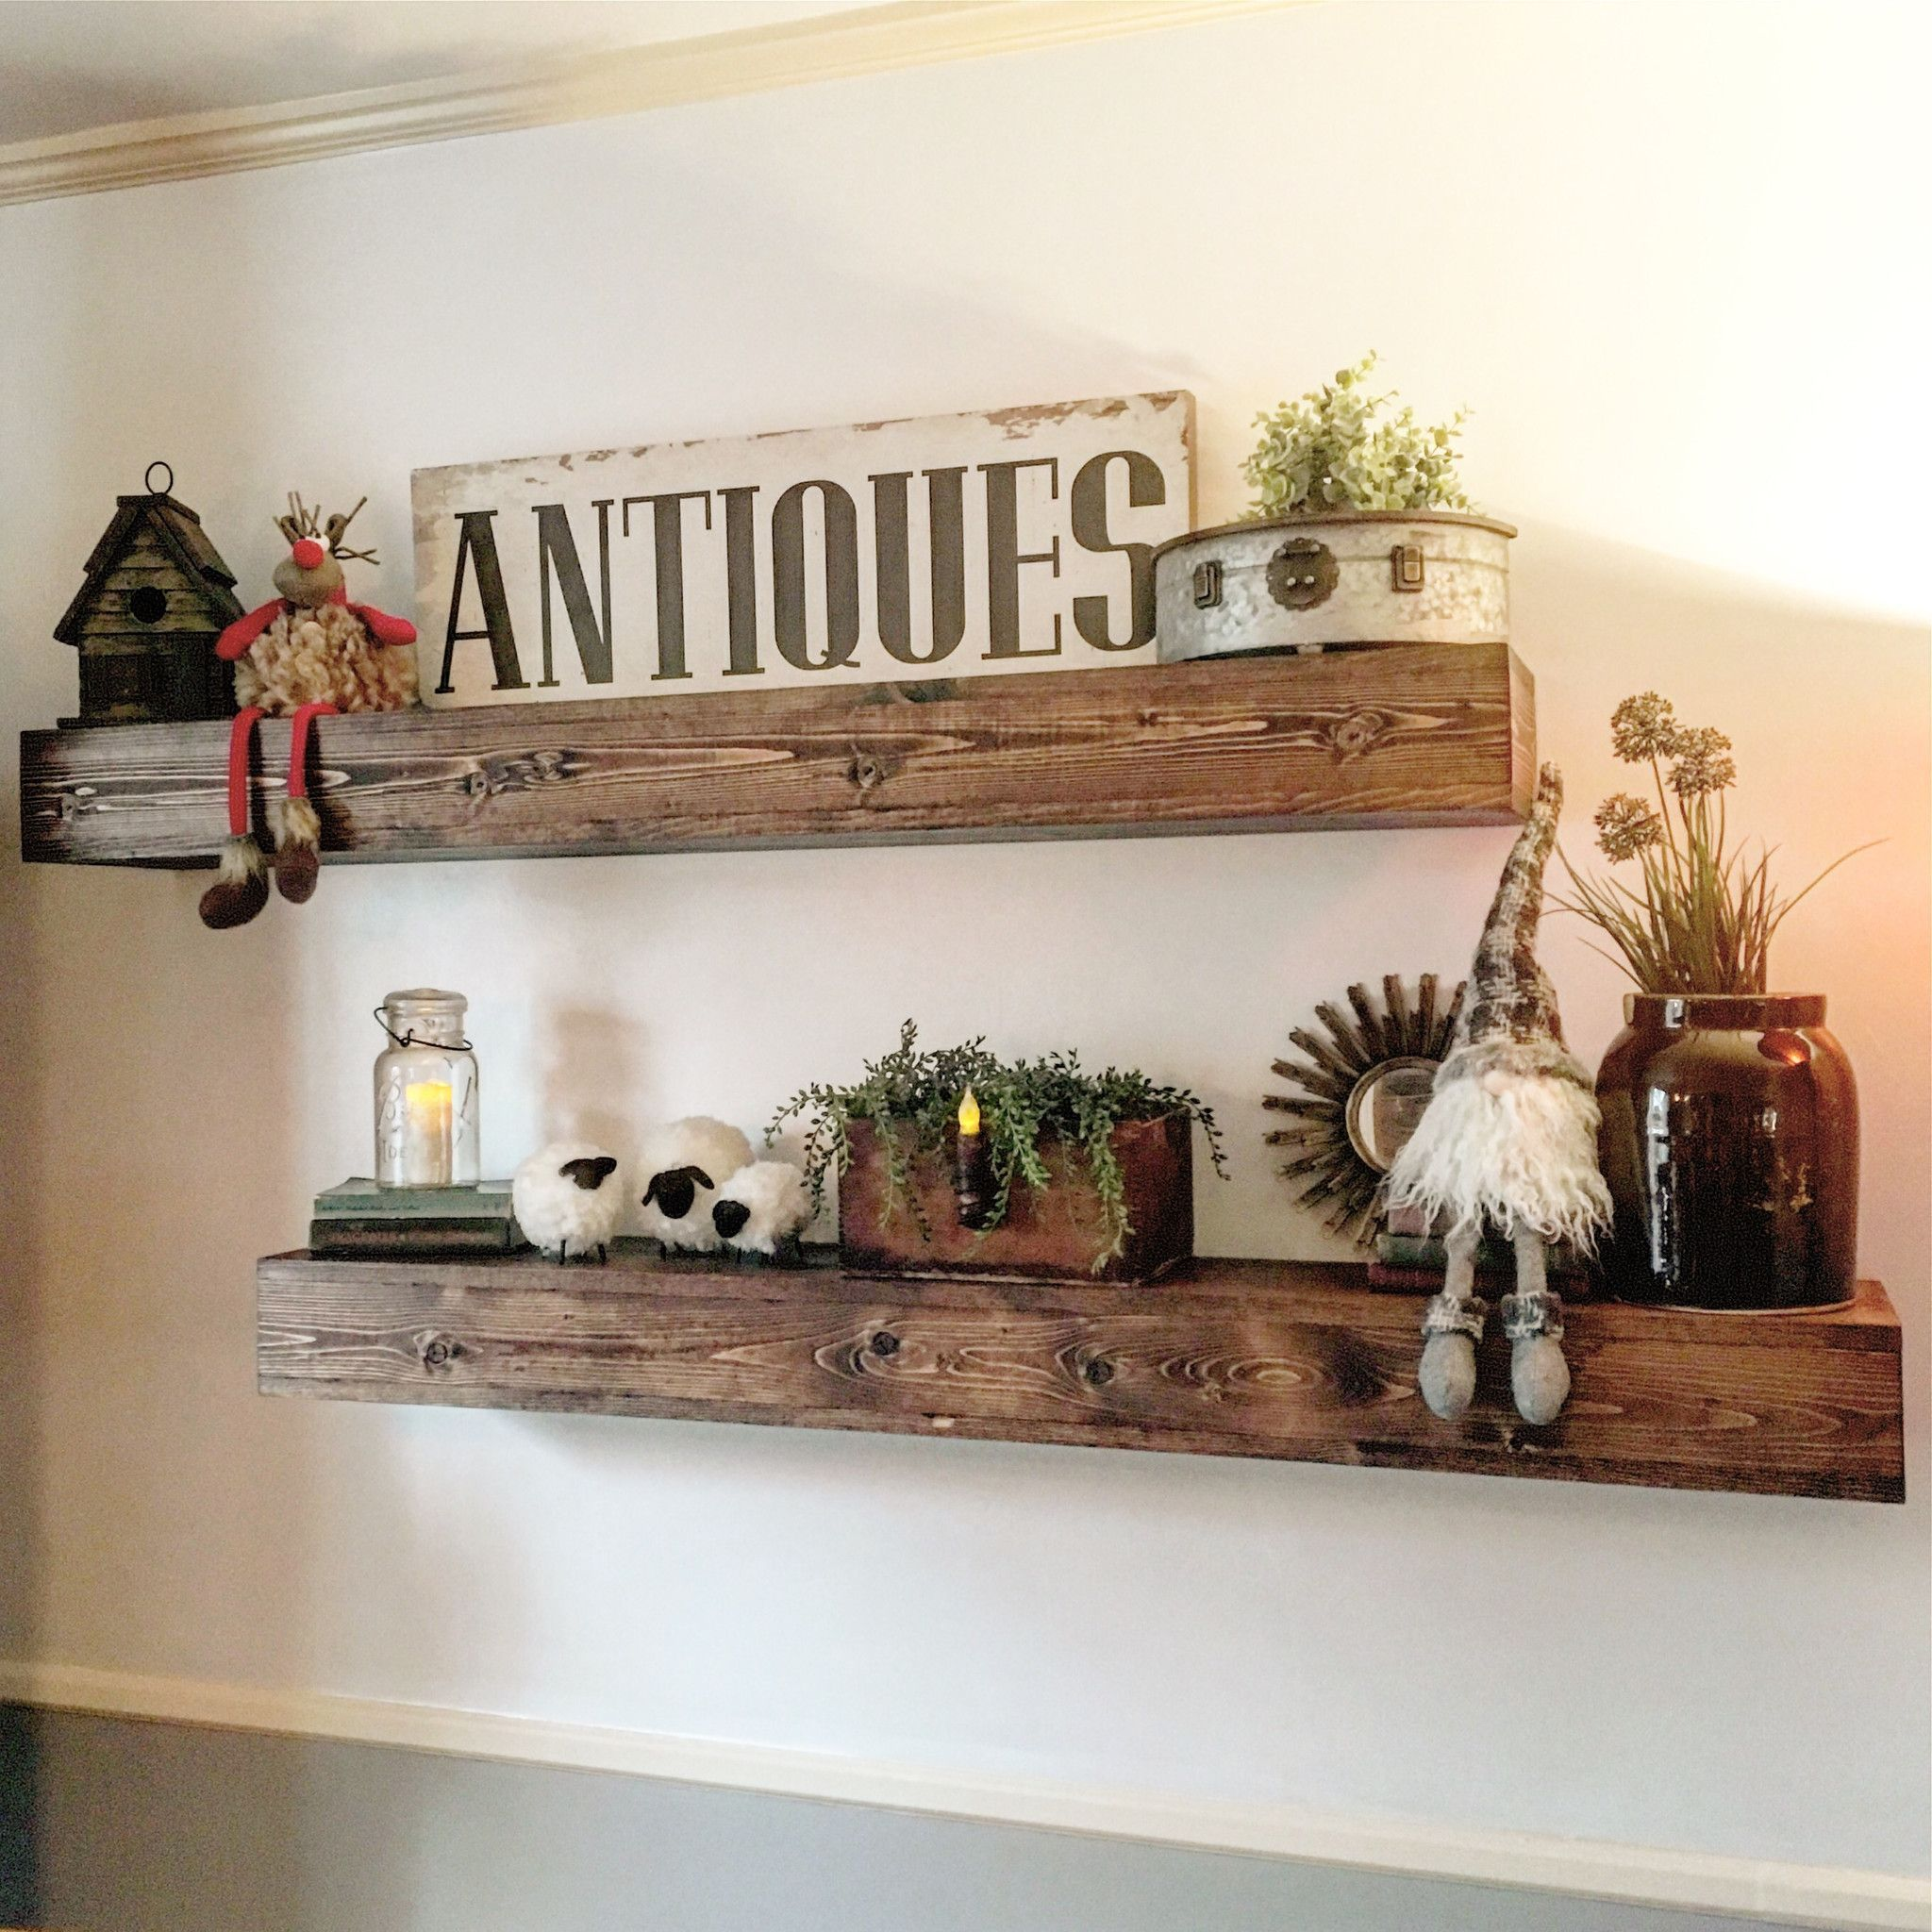 Handcrafted Floating Shelves Family Pictures Reuse And Shelves - Built in shelves in family room decorating